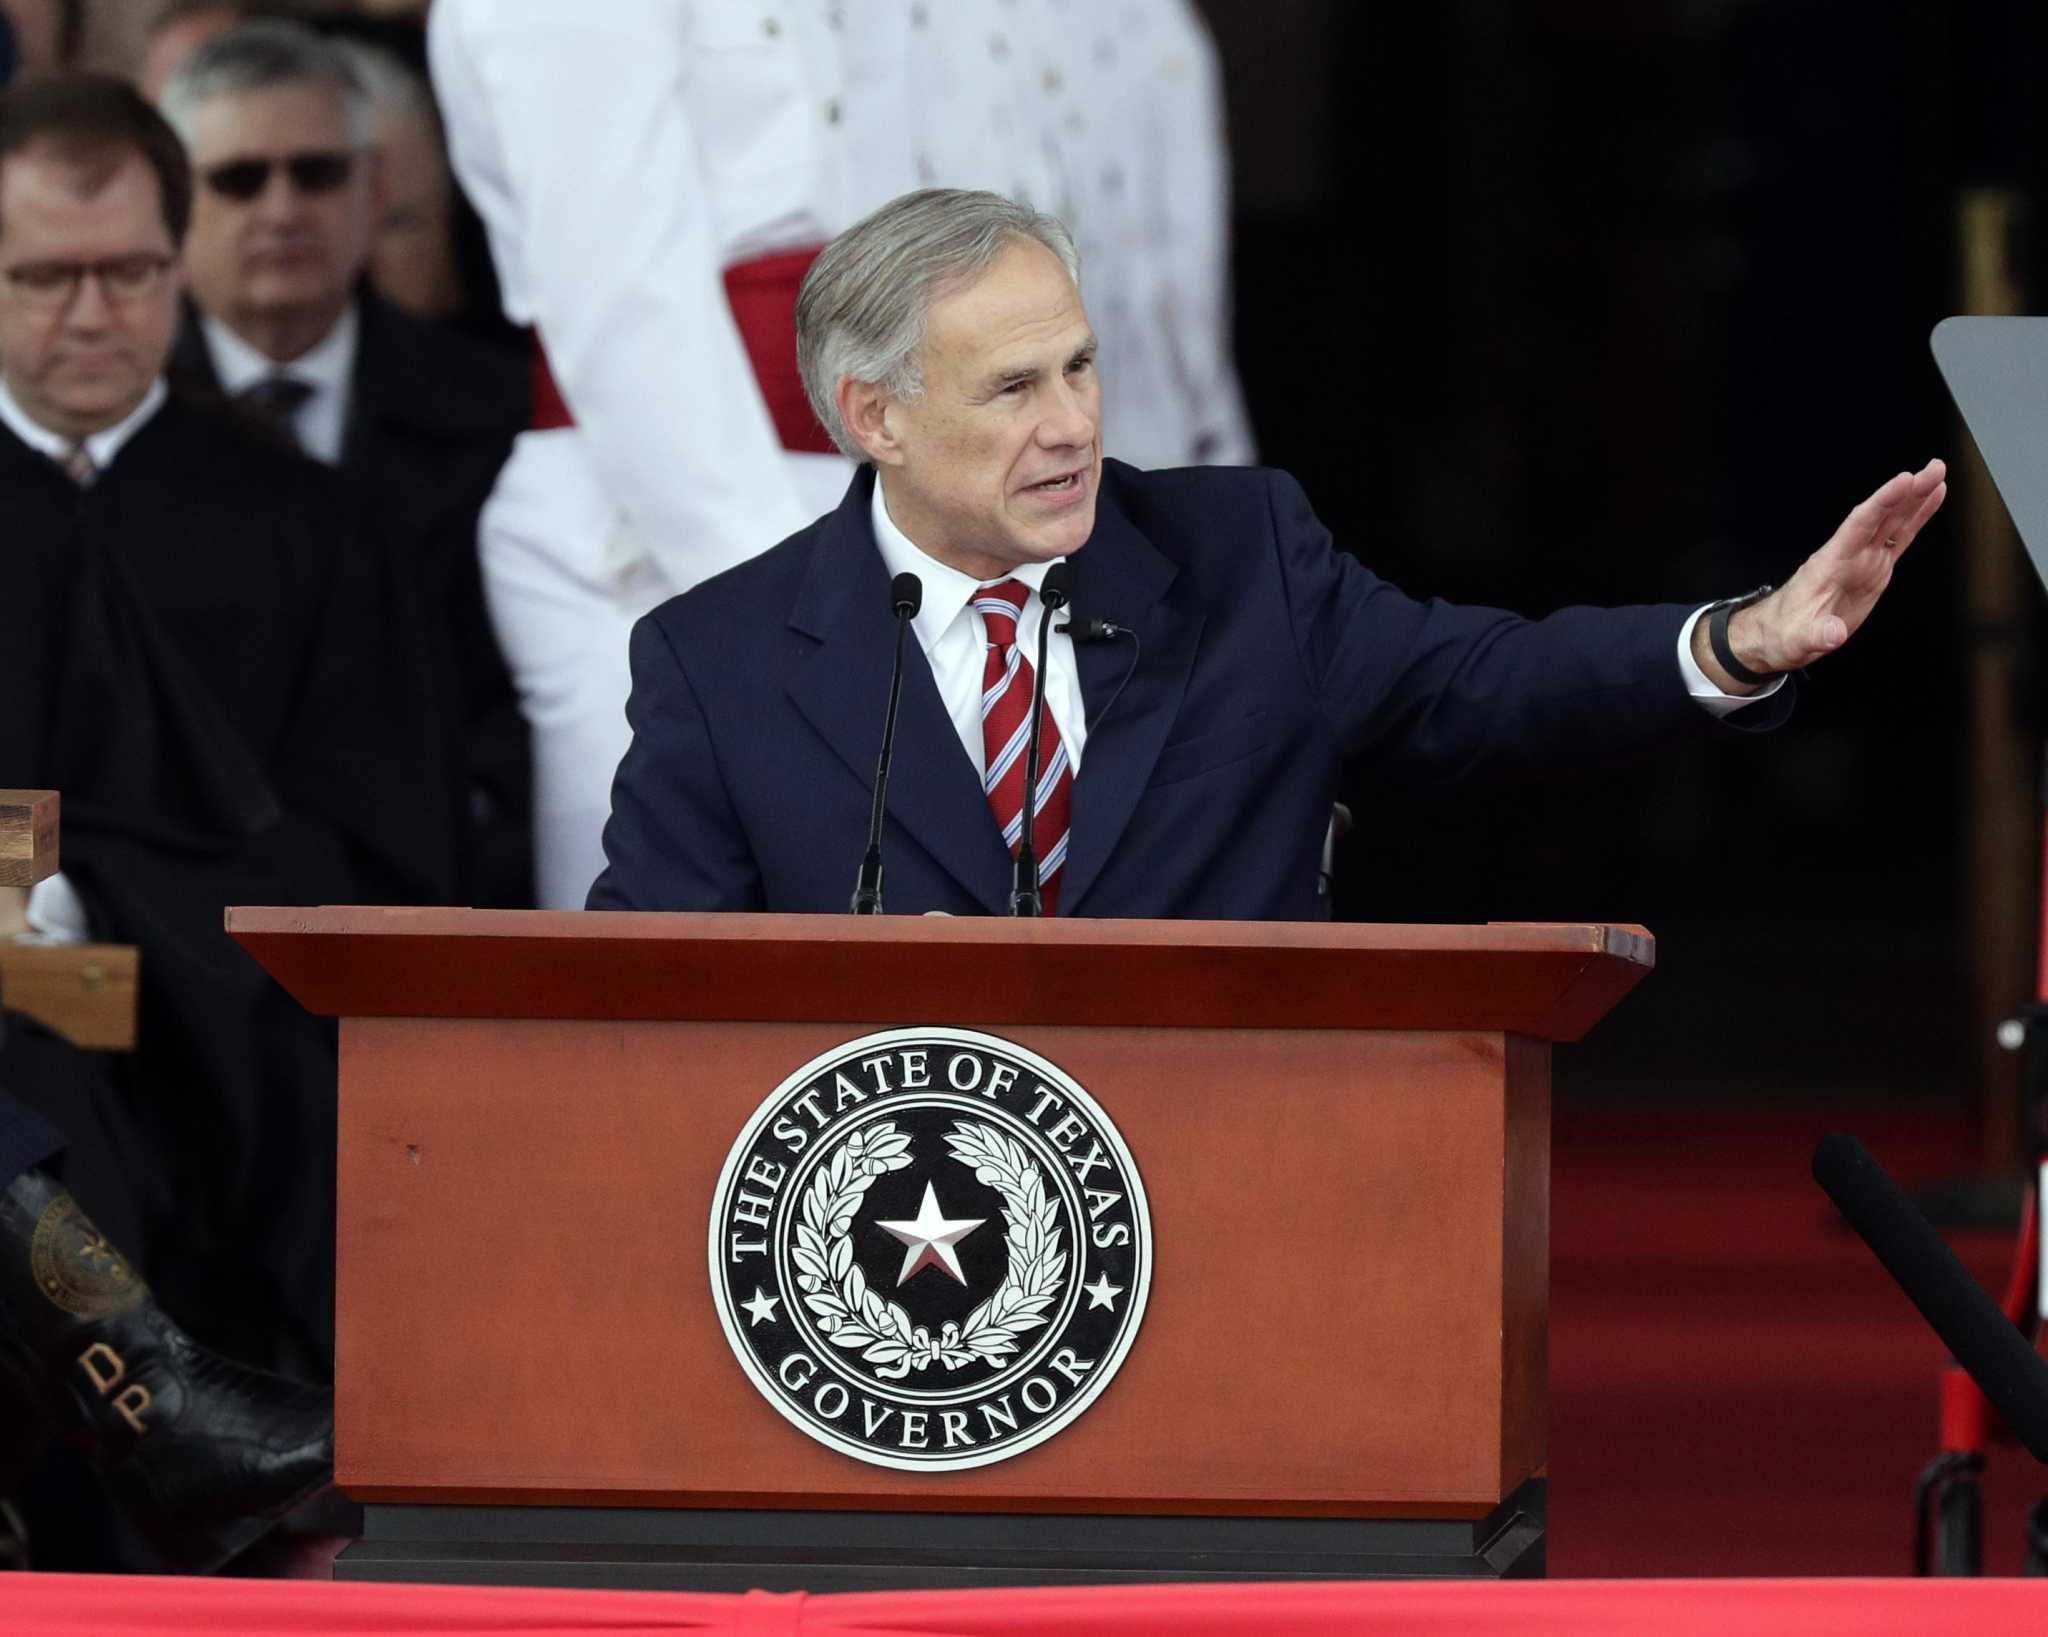 Texas Gov. Abbott picked as chair of Republican Governors Association for 2020 election